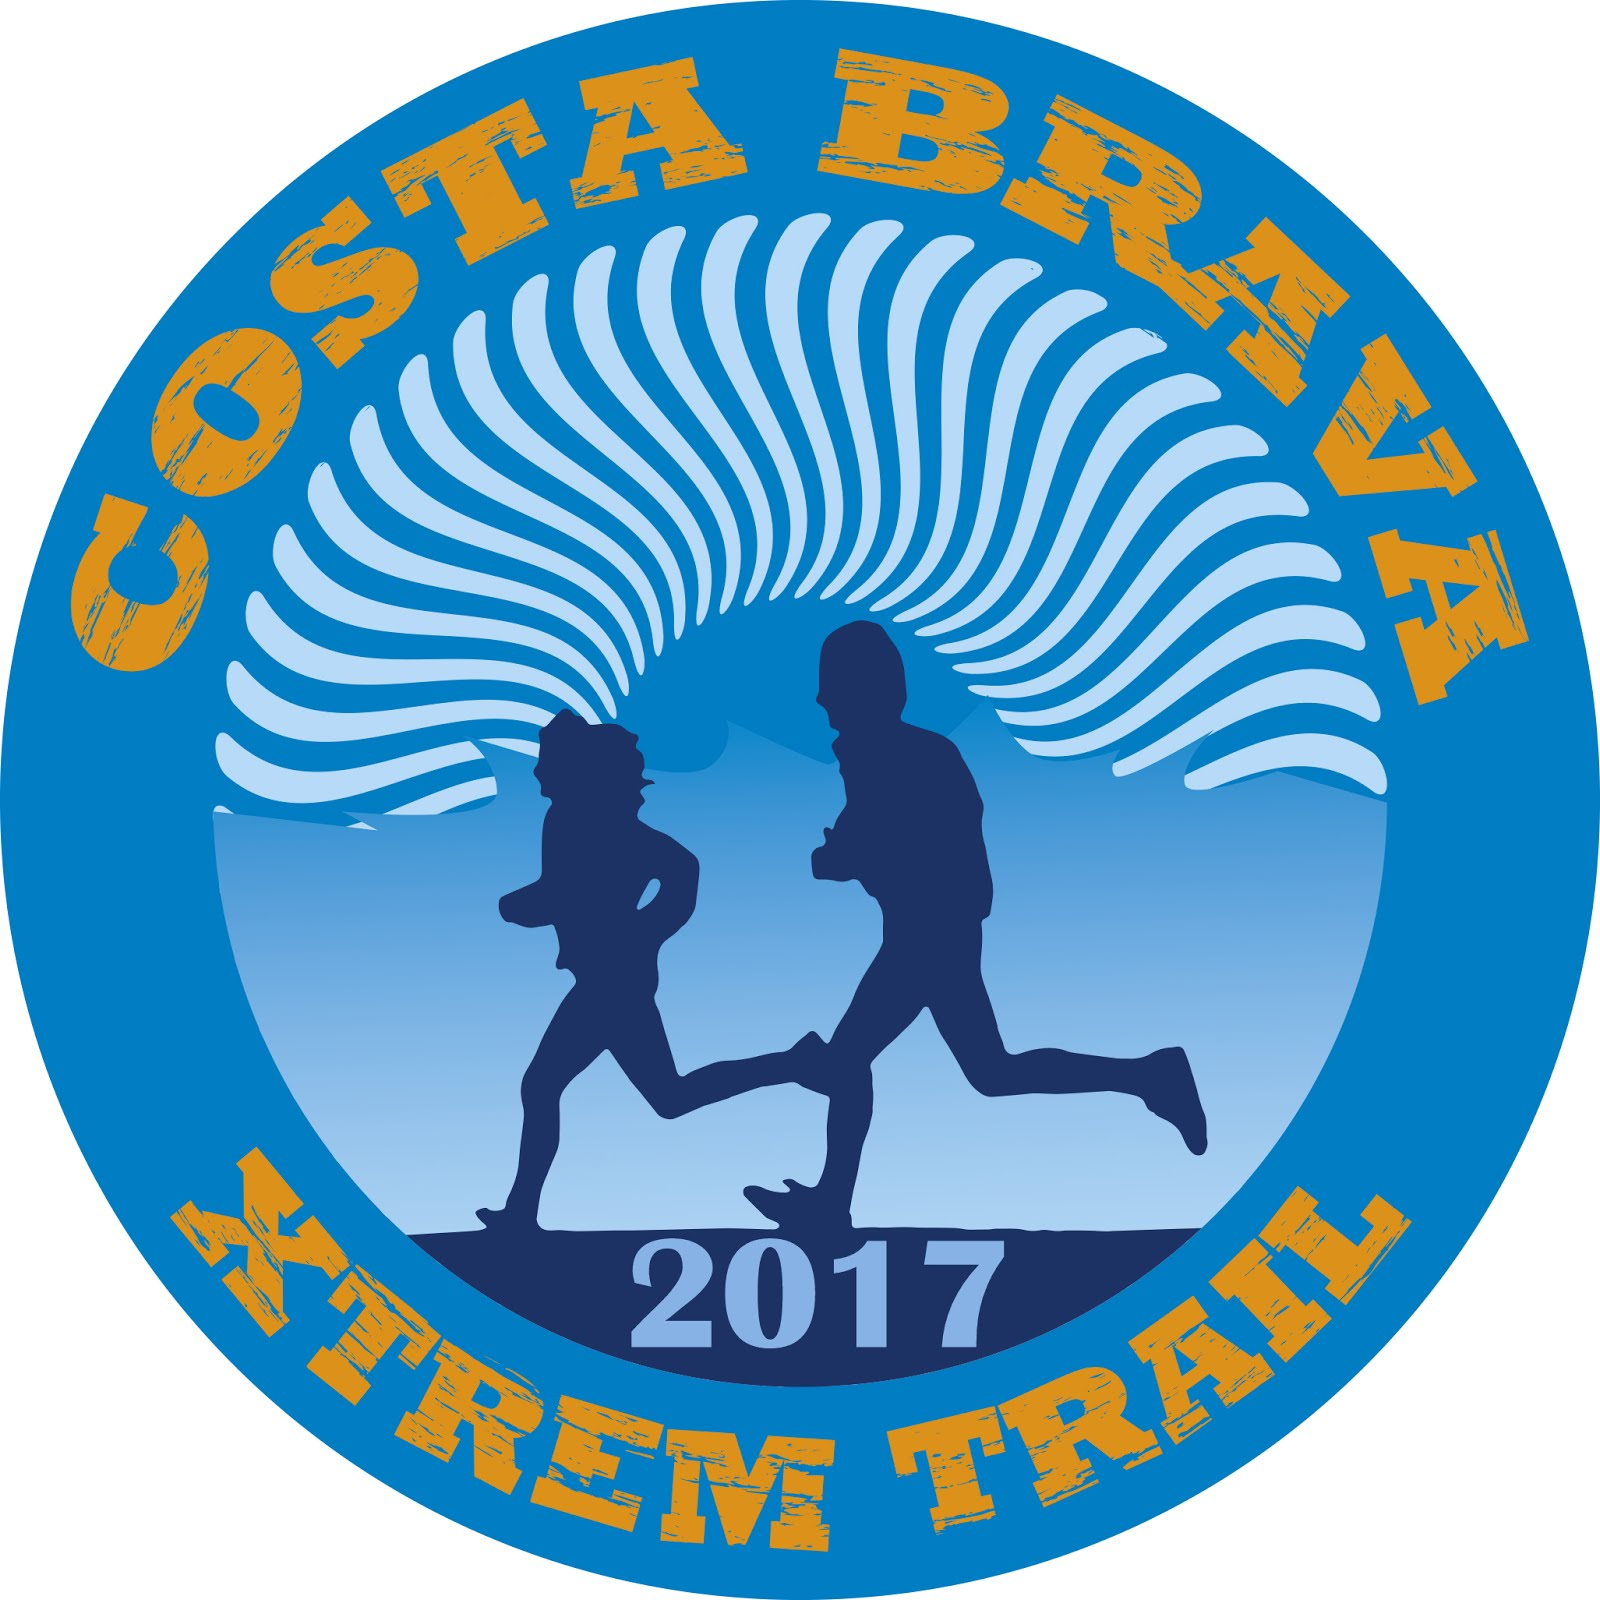 COSTA BRAVA EXTREM TRAIL